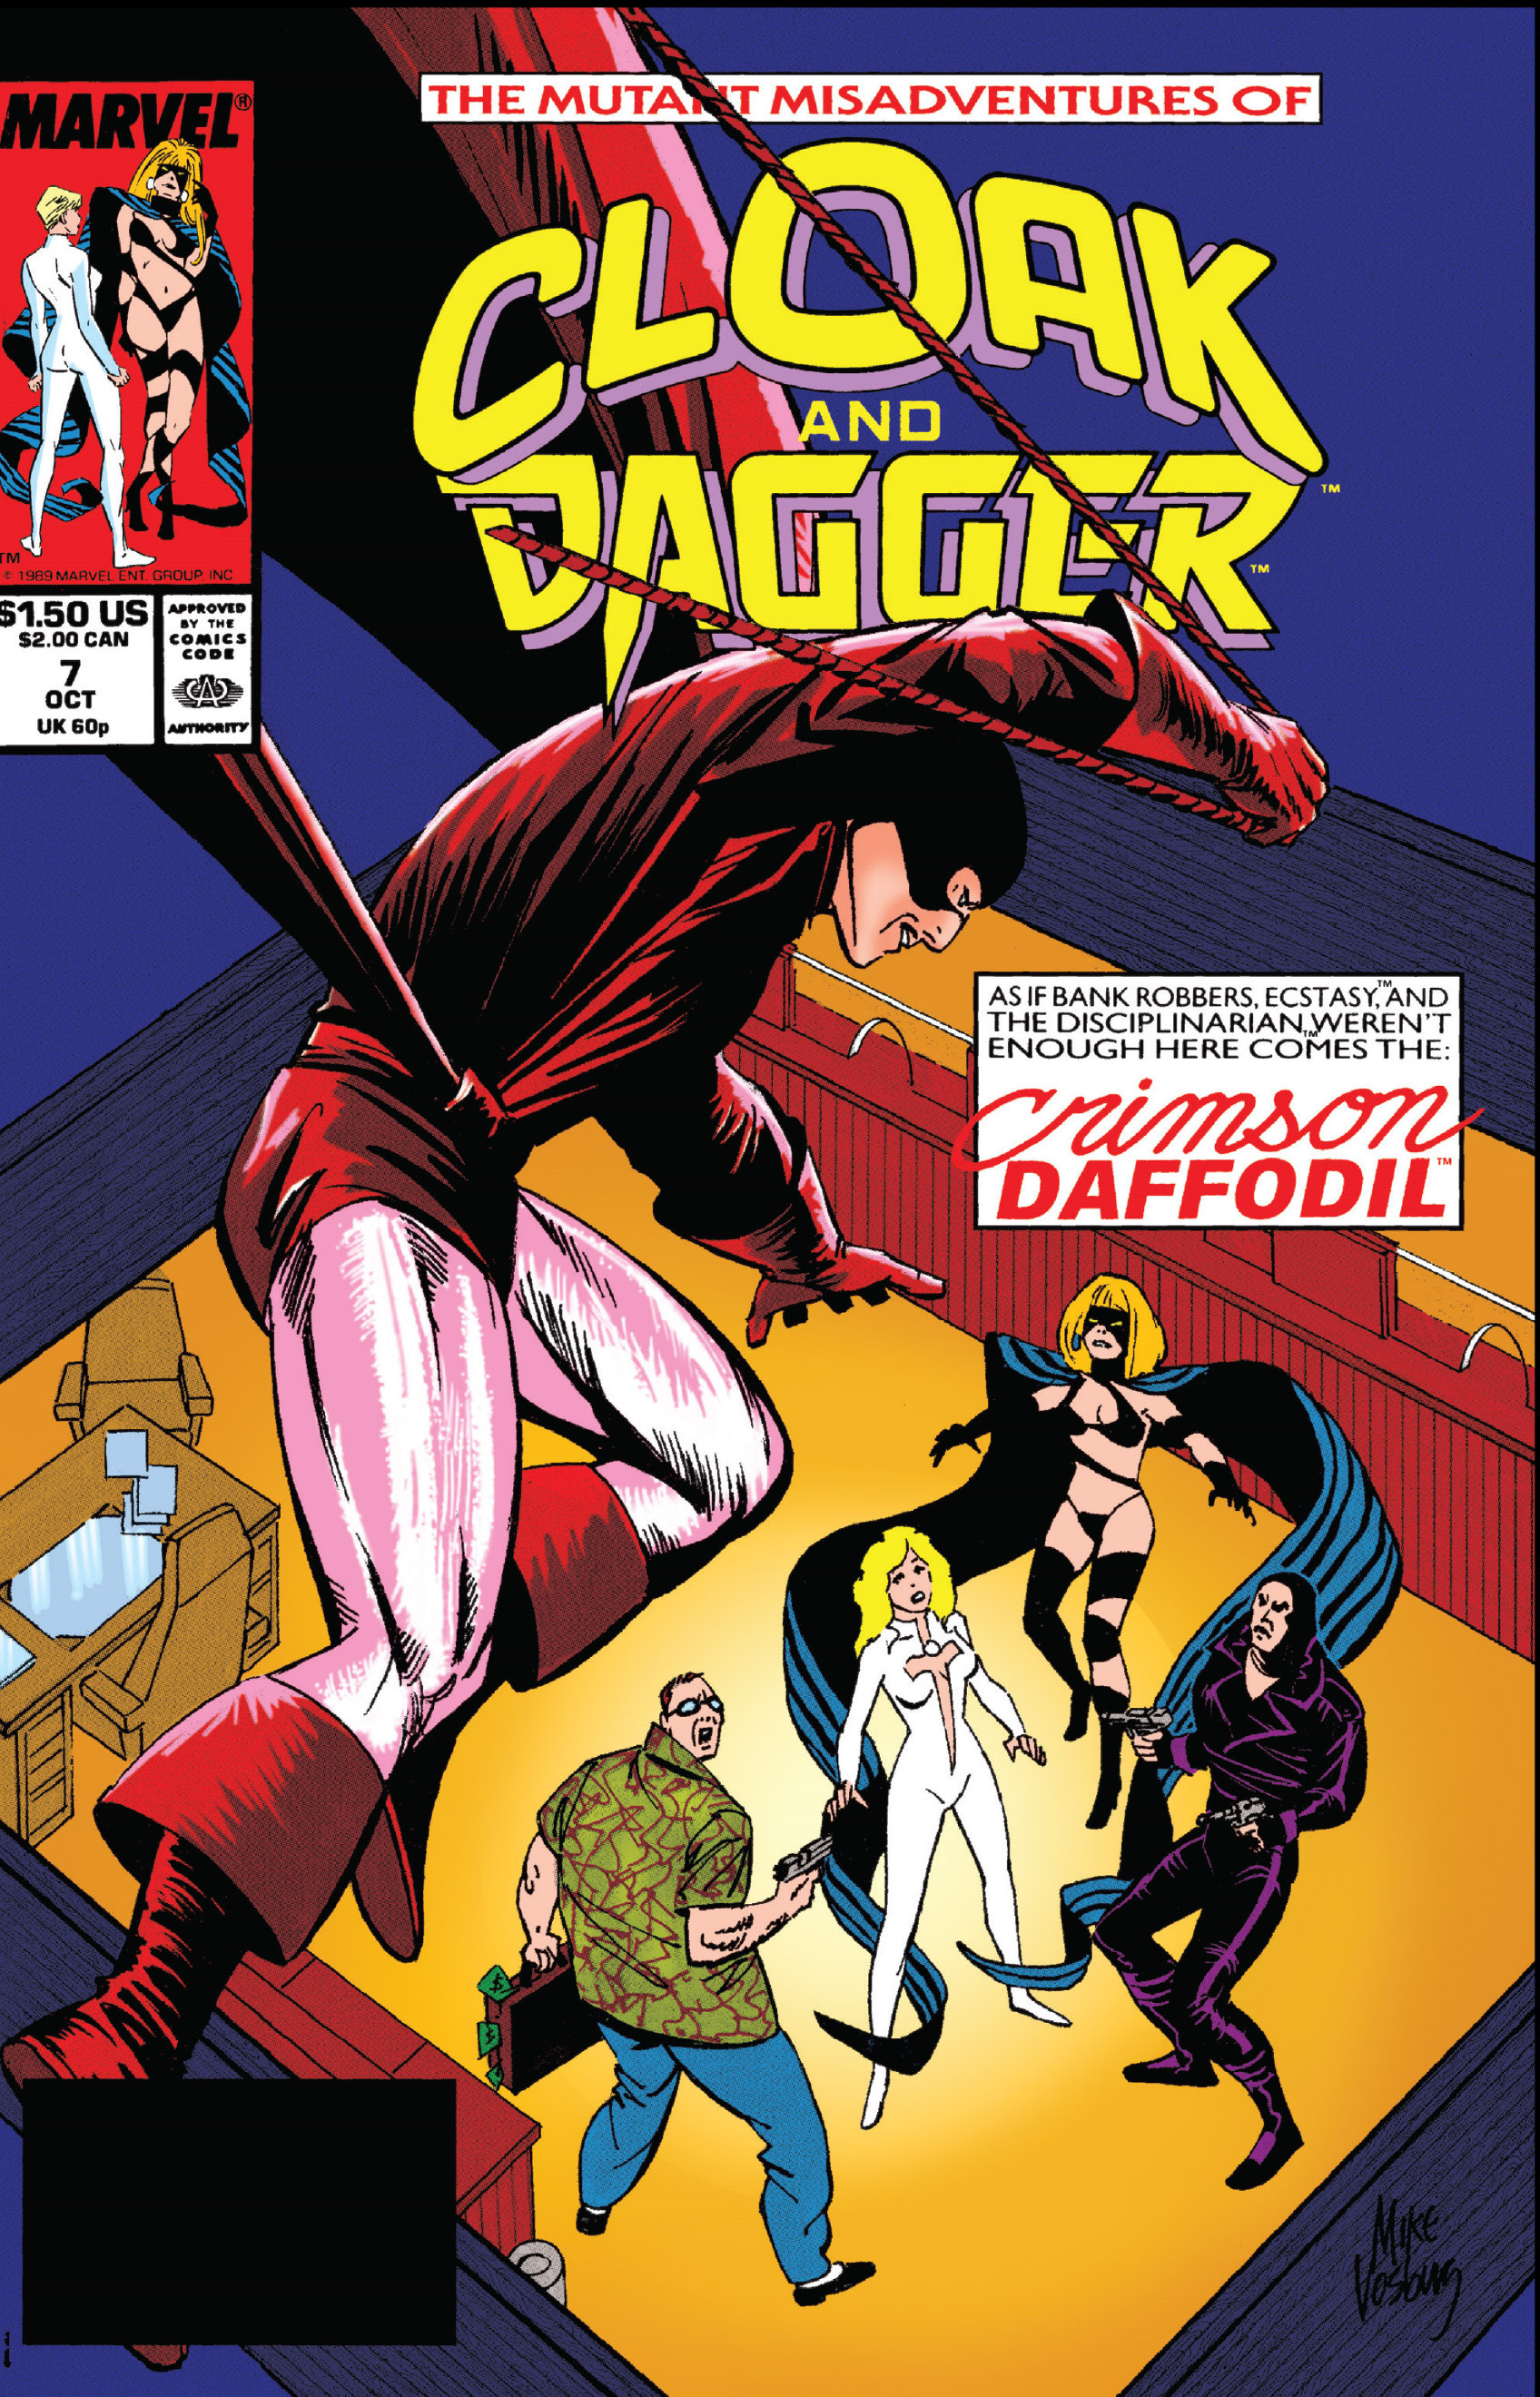 Mutant Misadventures of Cloak and Dagger Vol 1 7